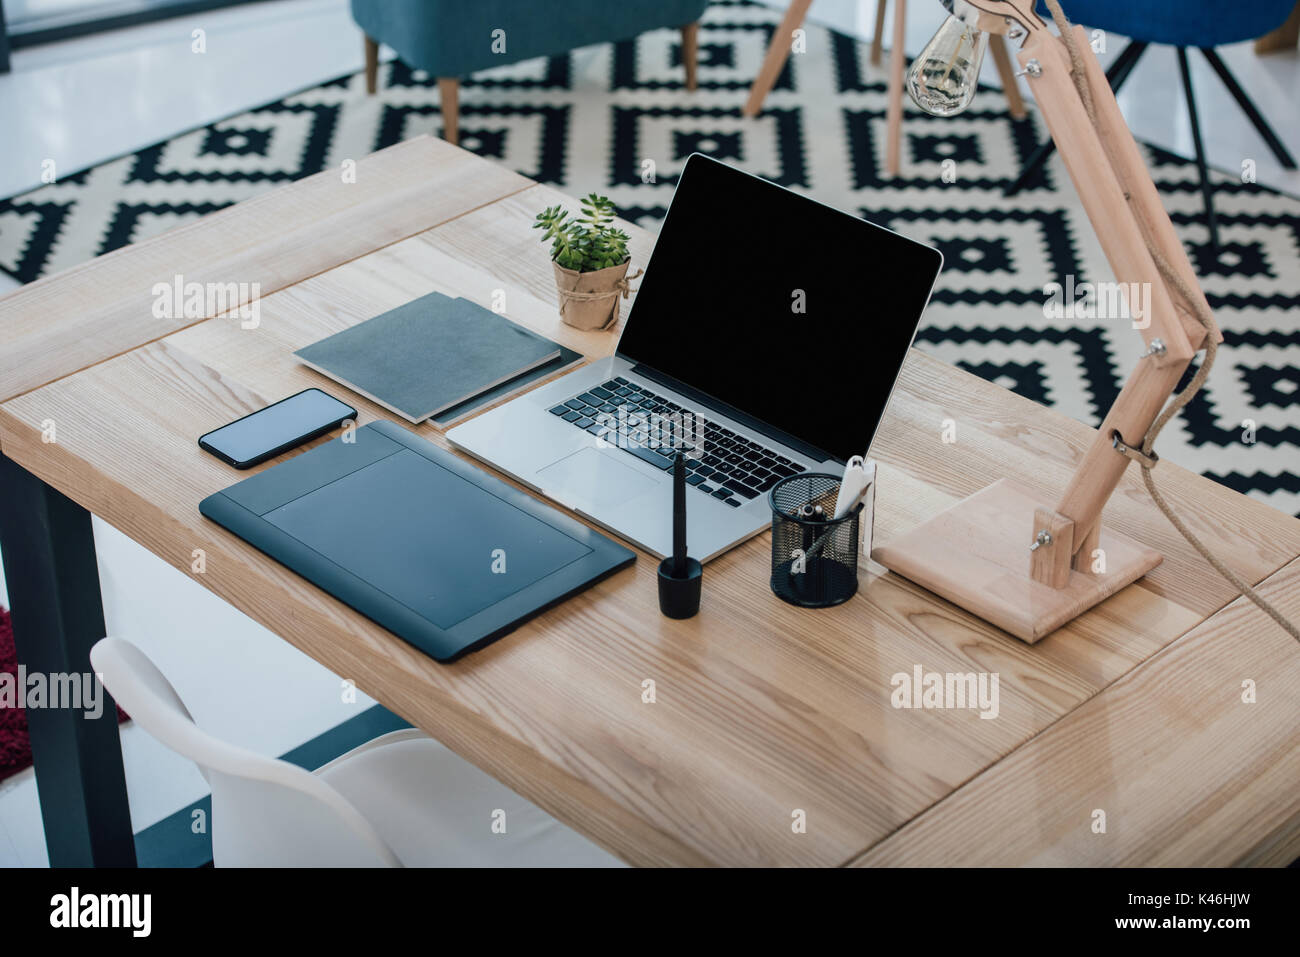 Close-up view of laptop with blank screen, graphic tablet and smartphone on wooden table - Stock Image